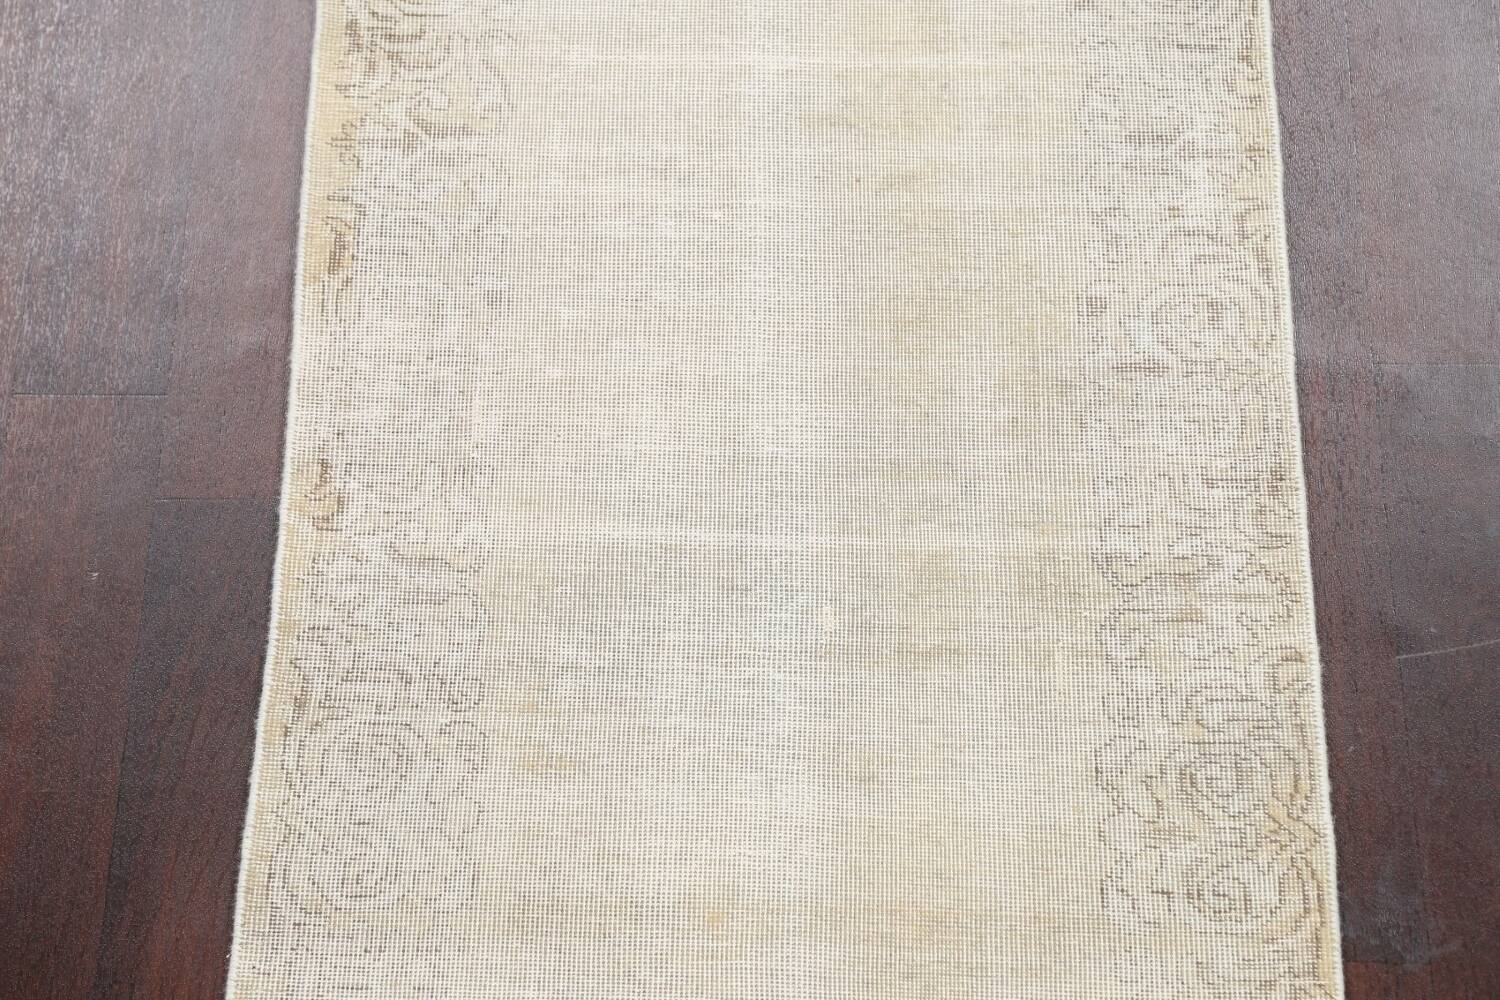 Muted Distressed Tabriz Persian Runner Rug 3x12 image 4